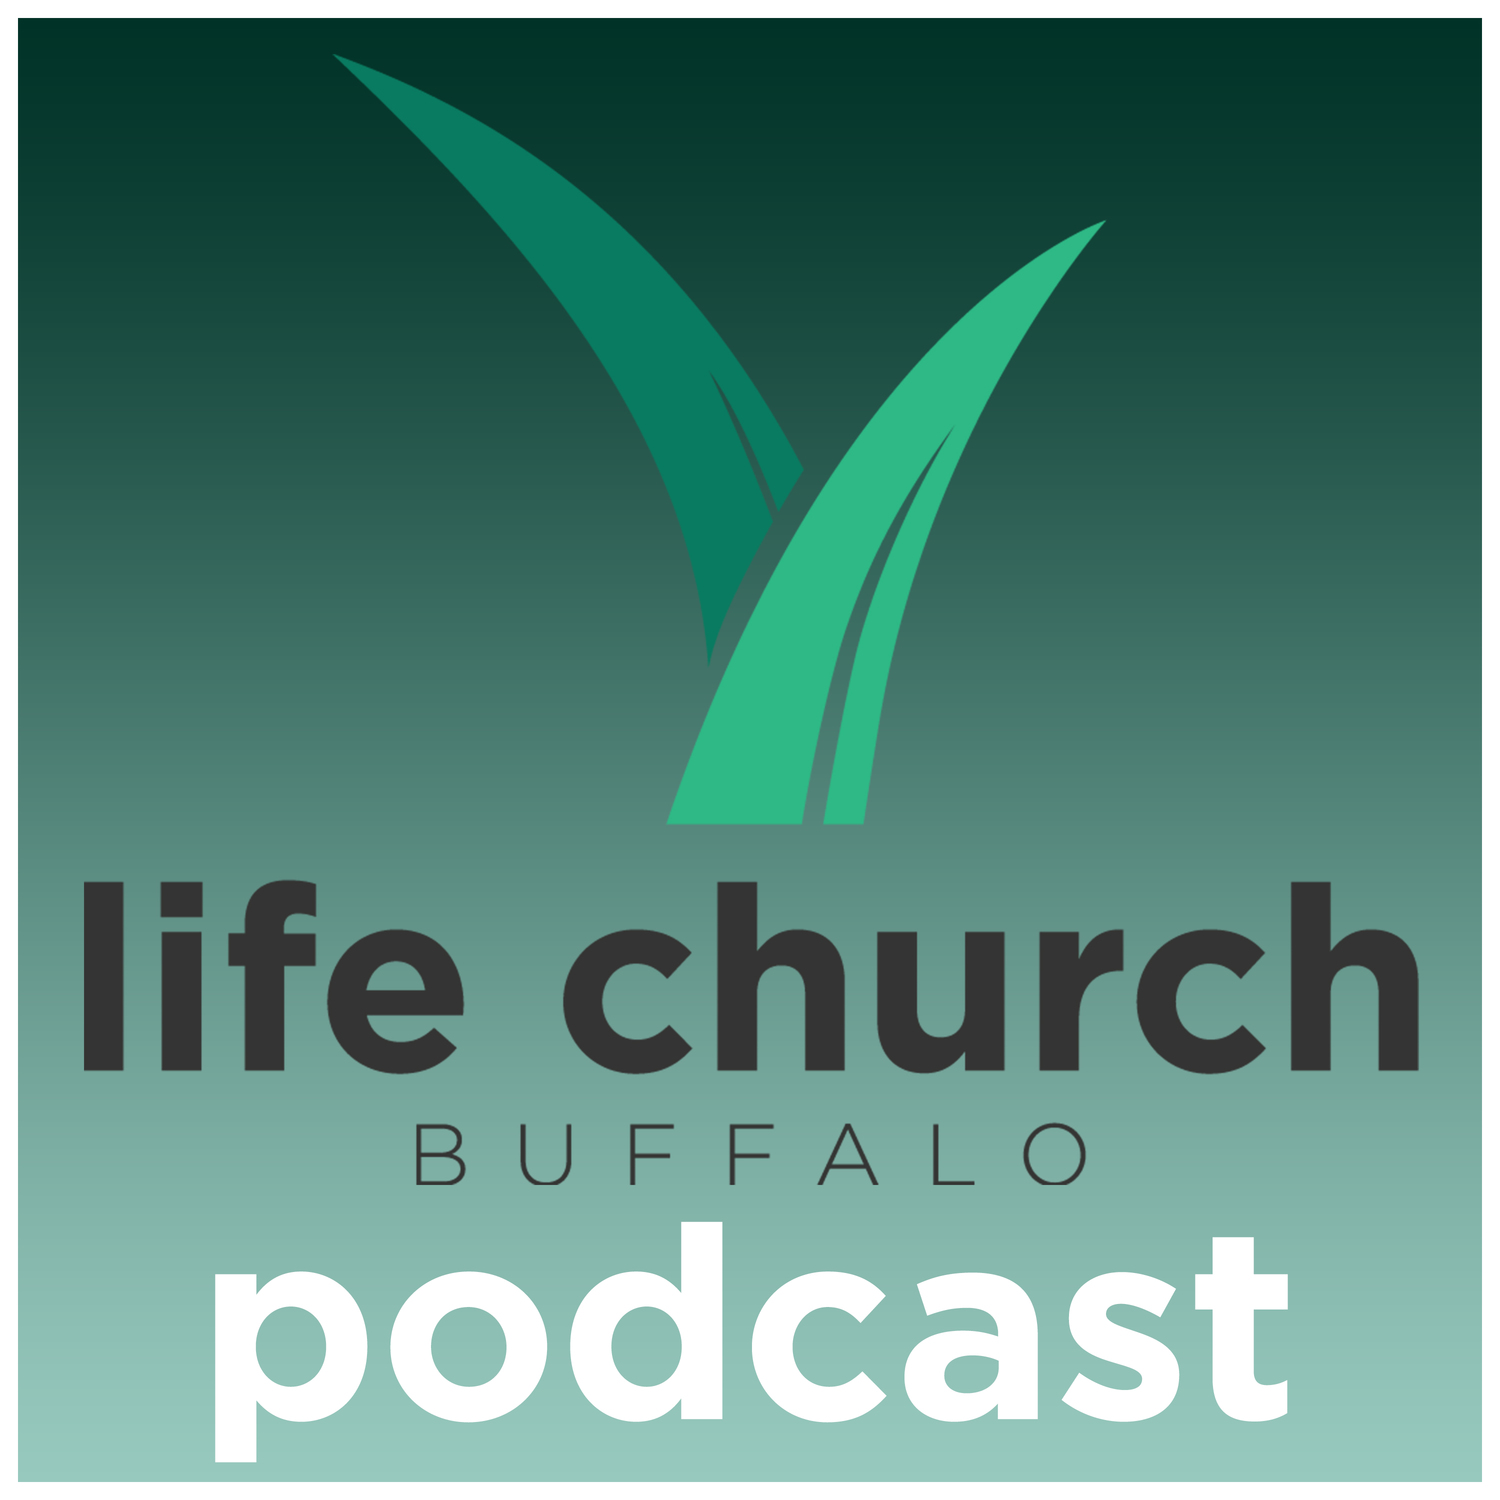 Life Church Buffalo Podcast